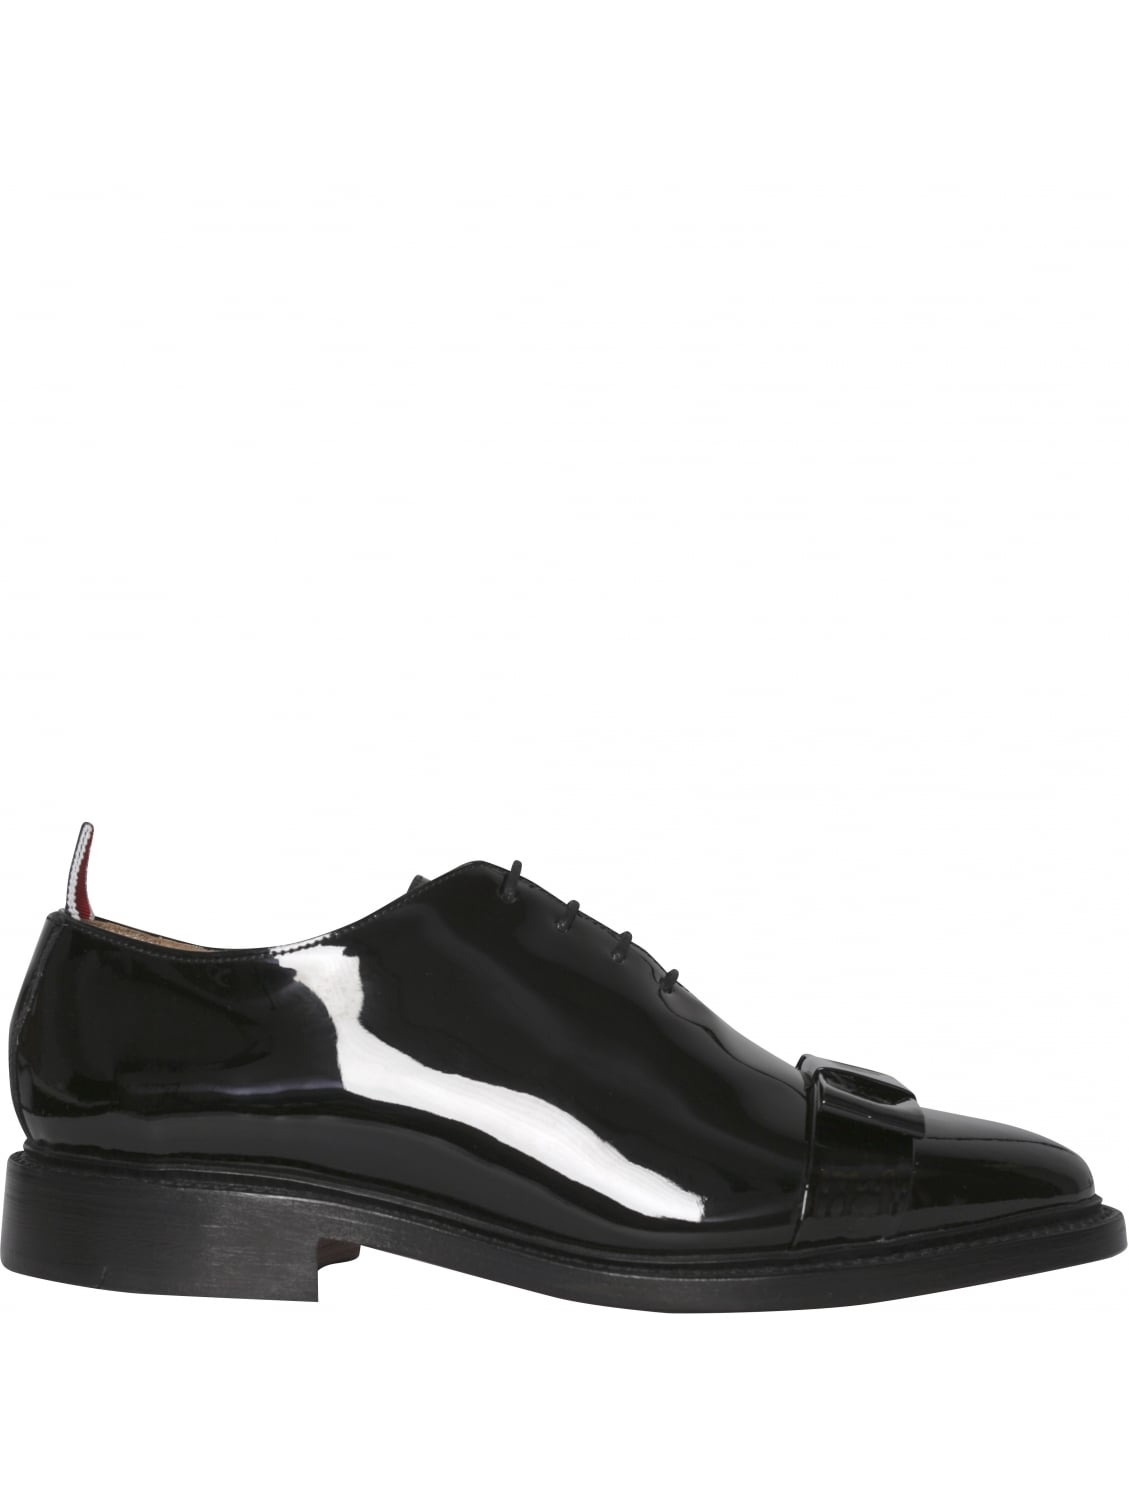 Thom Browne Patent Leather Black Bow Oxford Shoes In Black For Men | Lyst